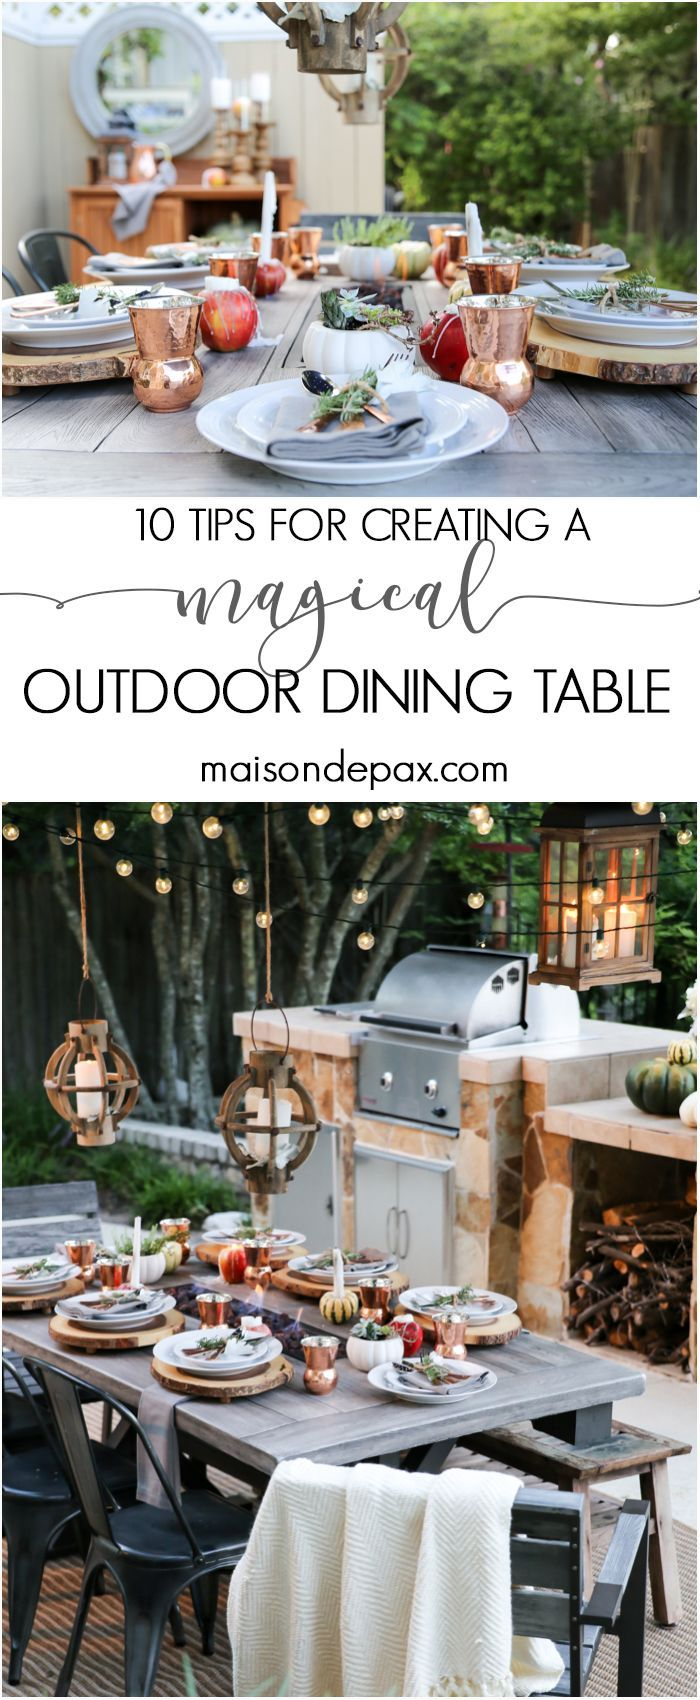 466 best decorating al fresco images on pinterest marriage